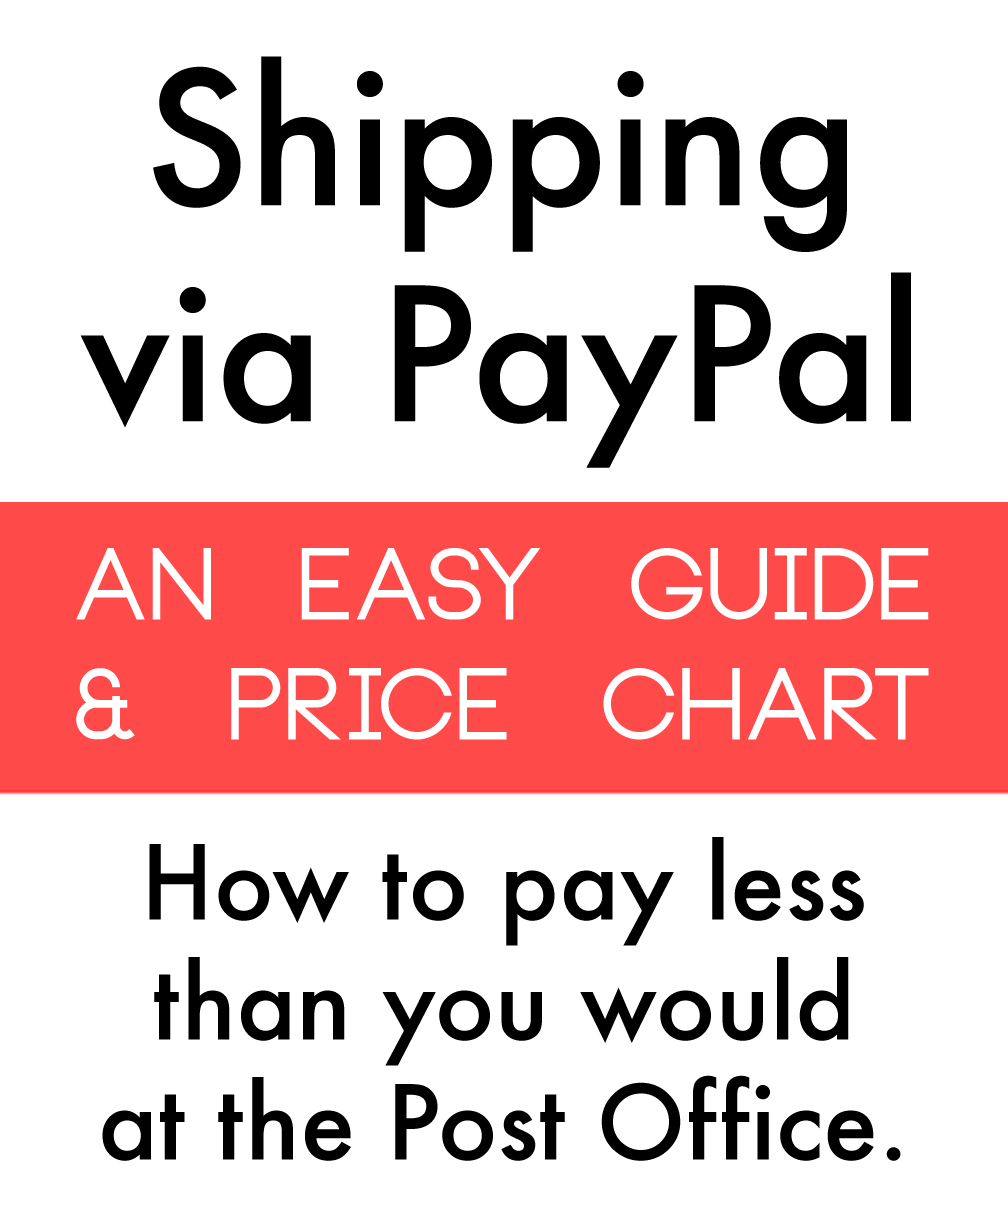 1 27 19 Tutorial How To Ship Via Paypal An Easier And Cheaper Postage Alternative To The Post Office Ebay Selling Tips Things To Sell Selling On Ebay